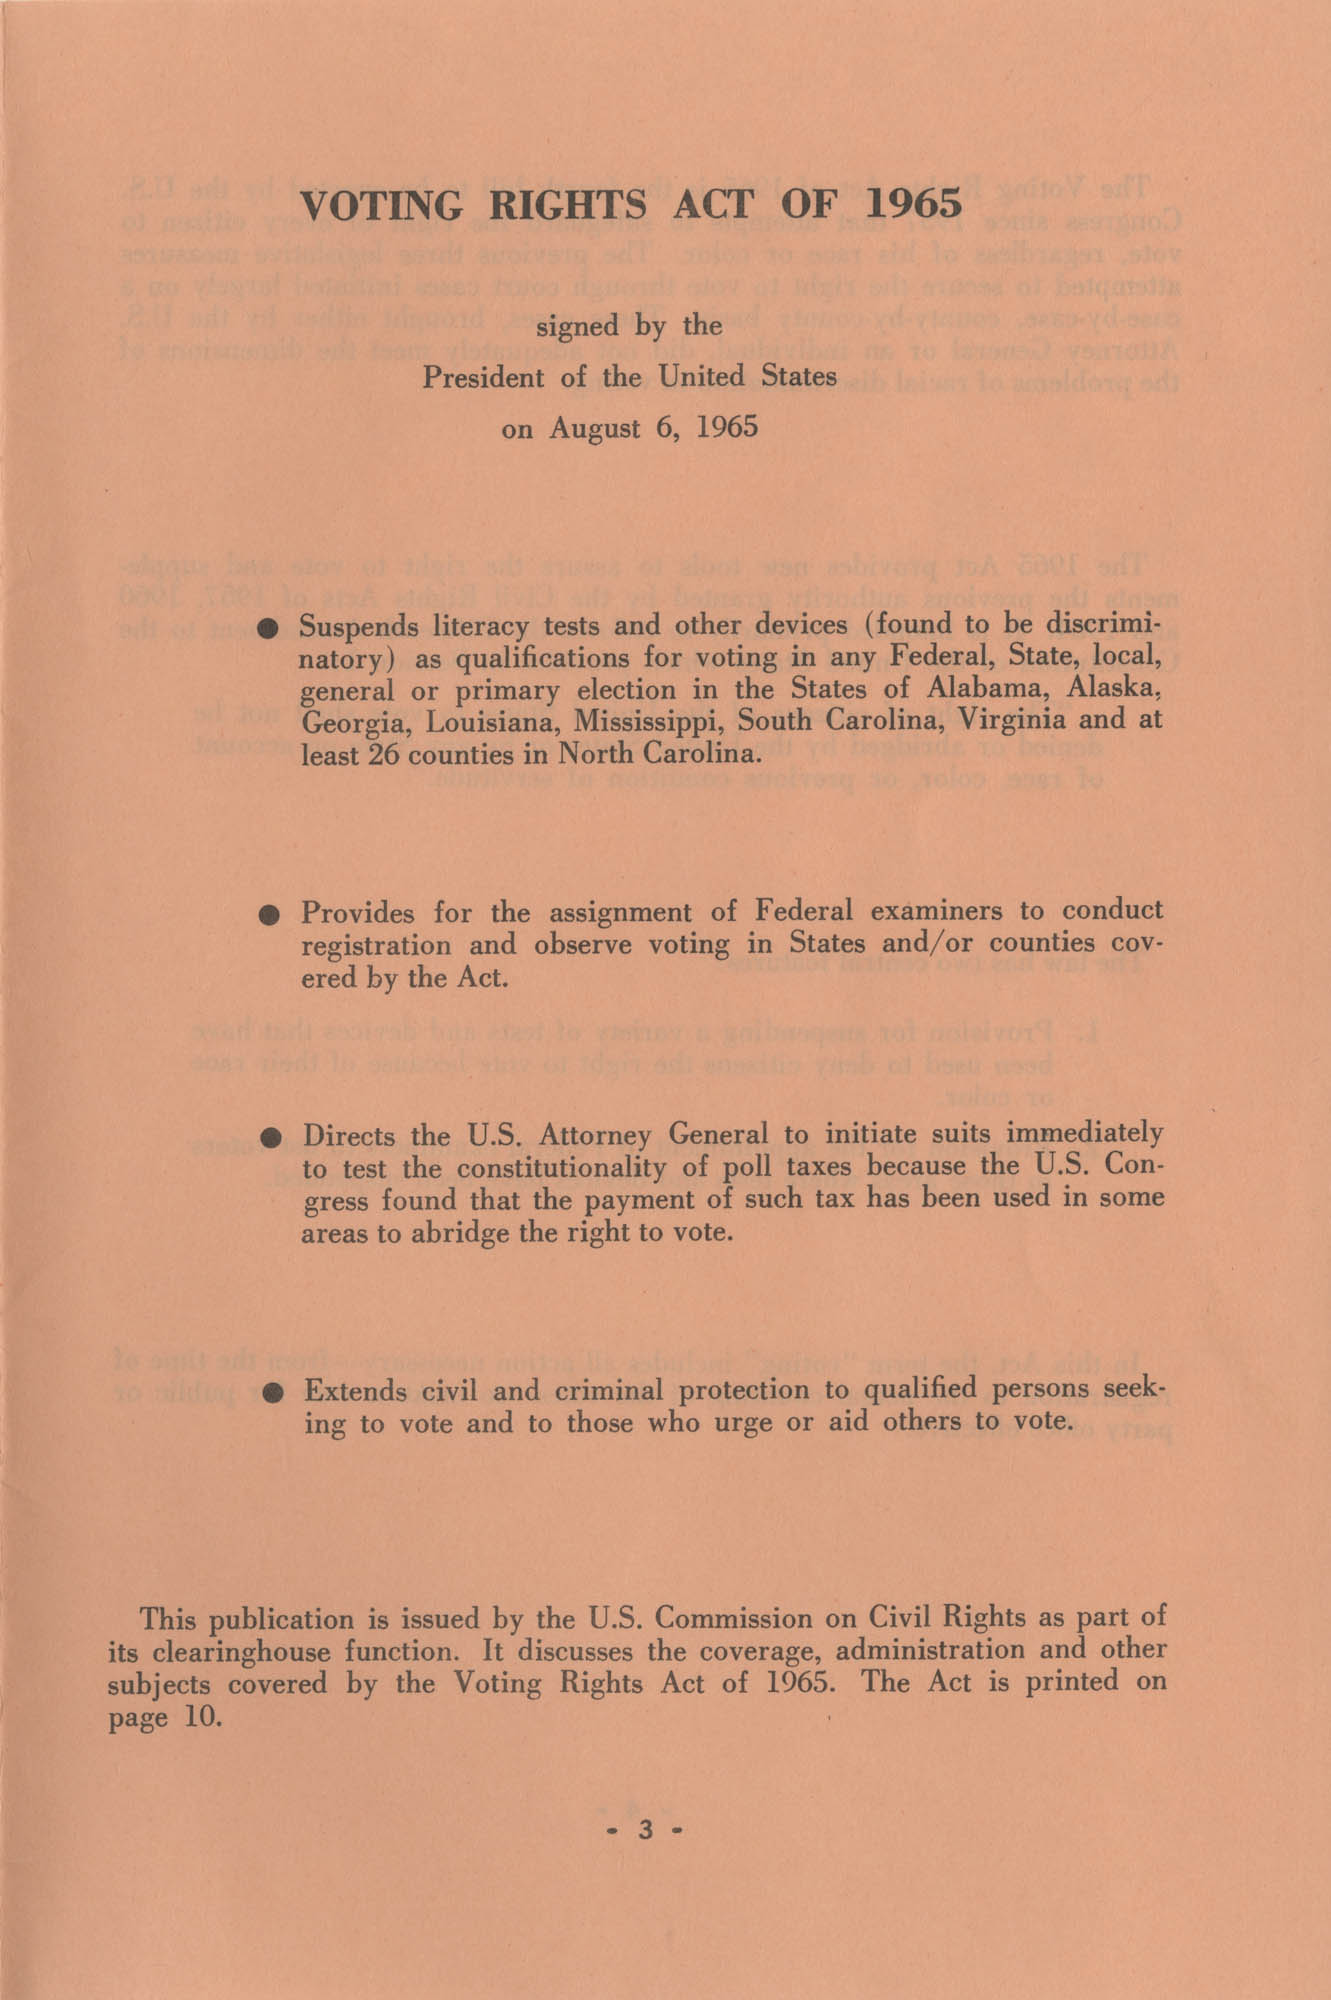 The Voting Rights Act of 1965, Page 3